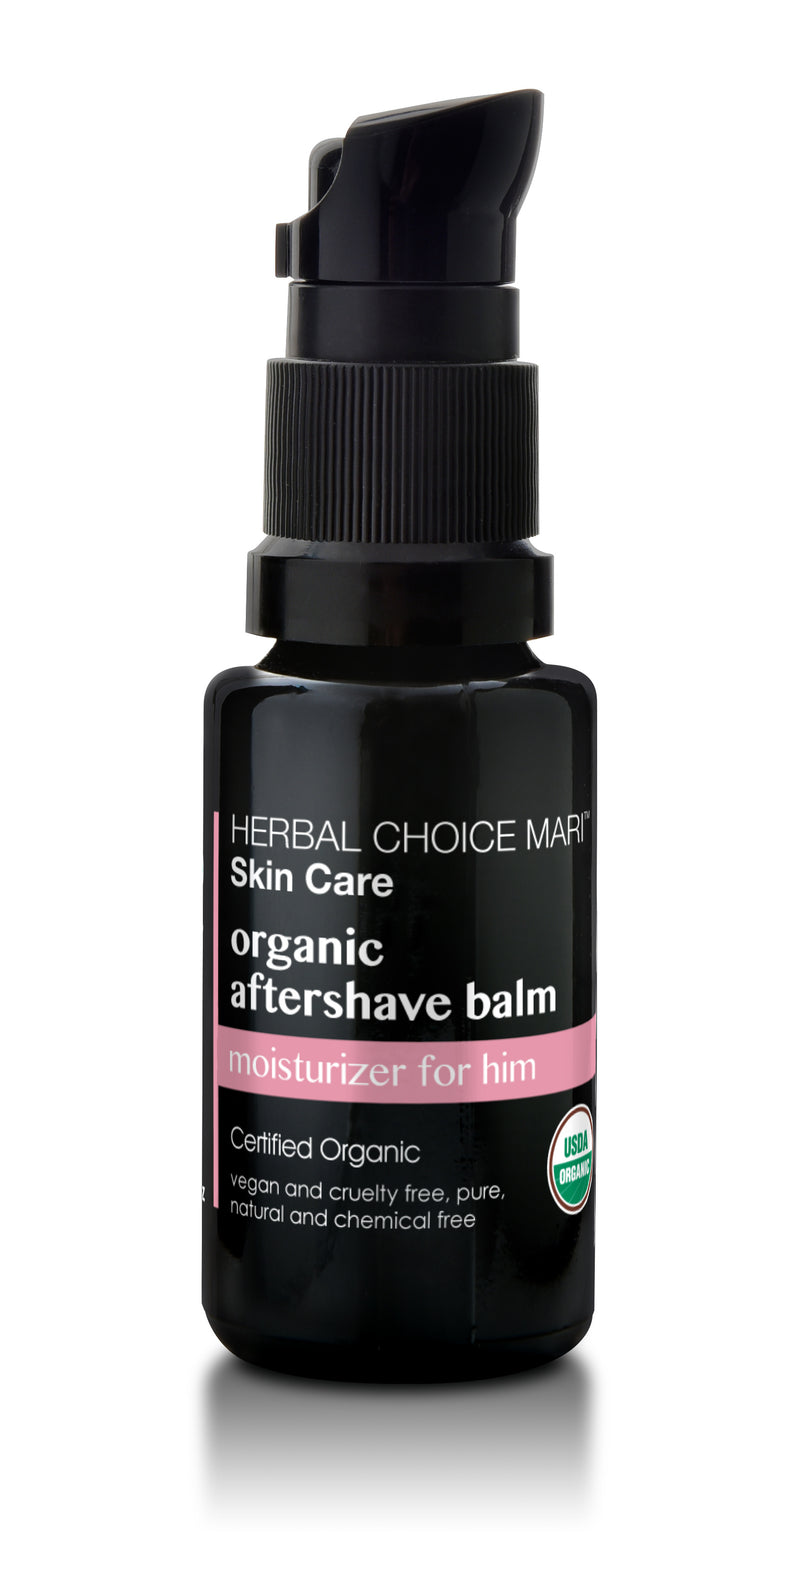 Herbal Choice Mari Organic Aftershave, Moisturizing Balm - Herbal Choice Mari Organic Aftershave, Moisturizing Balm - Herbal Choice Mari Organic Aftershave, Moisturizing Balm